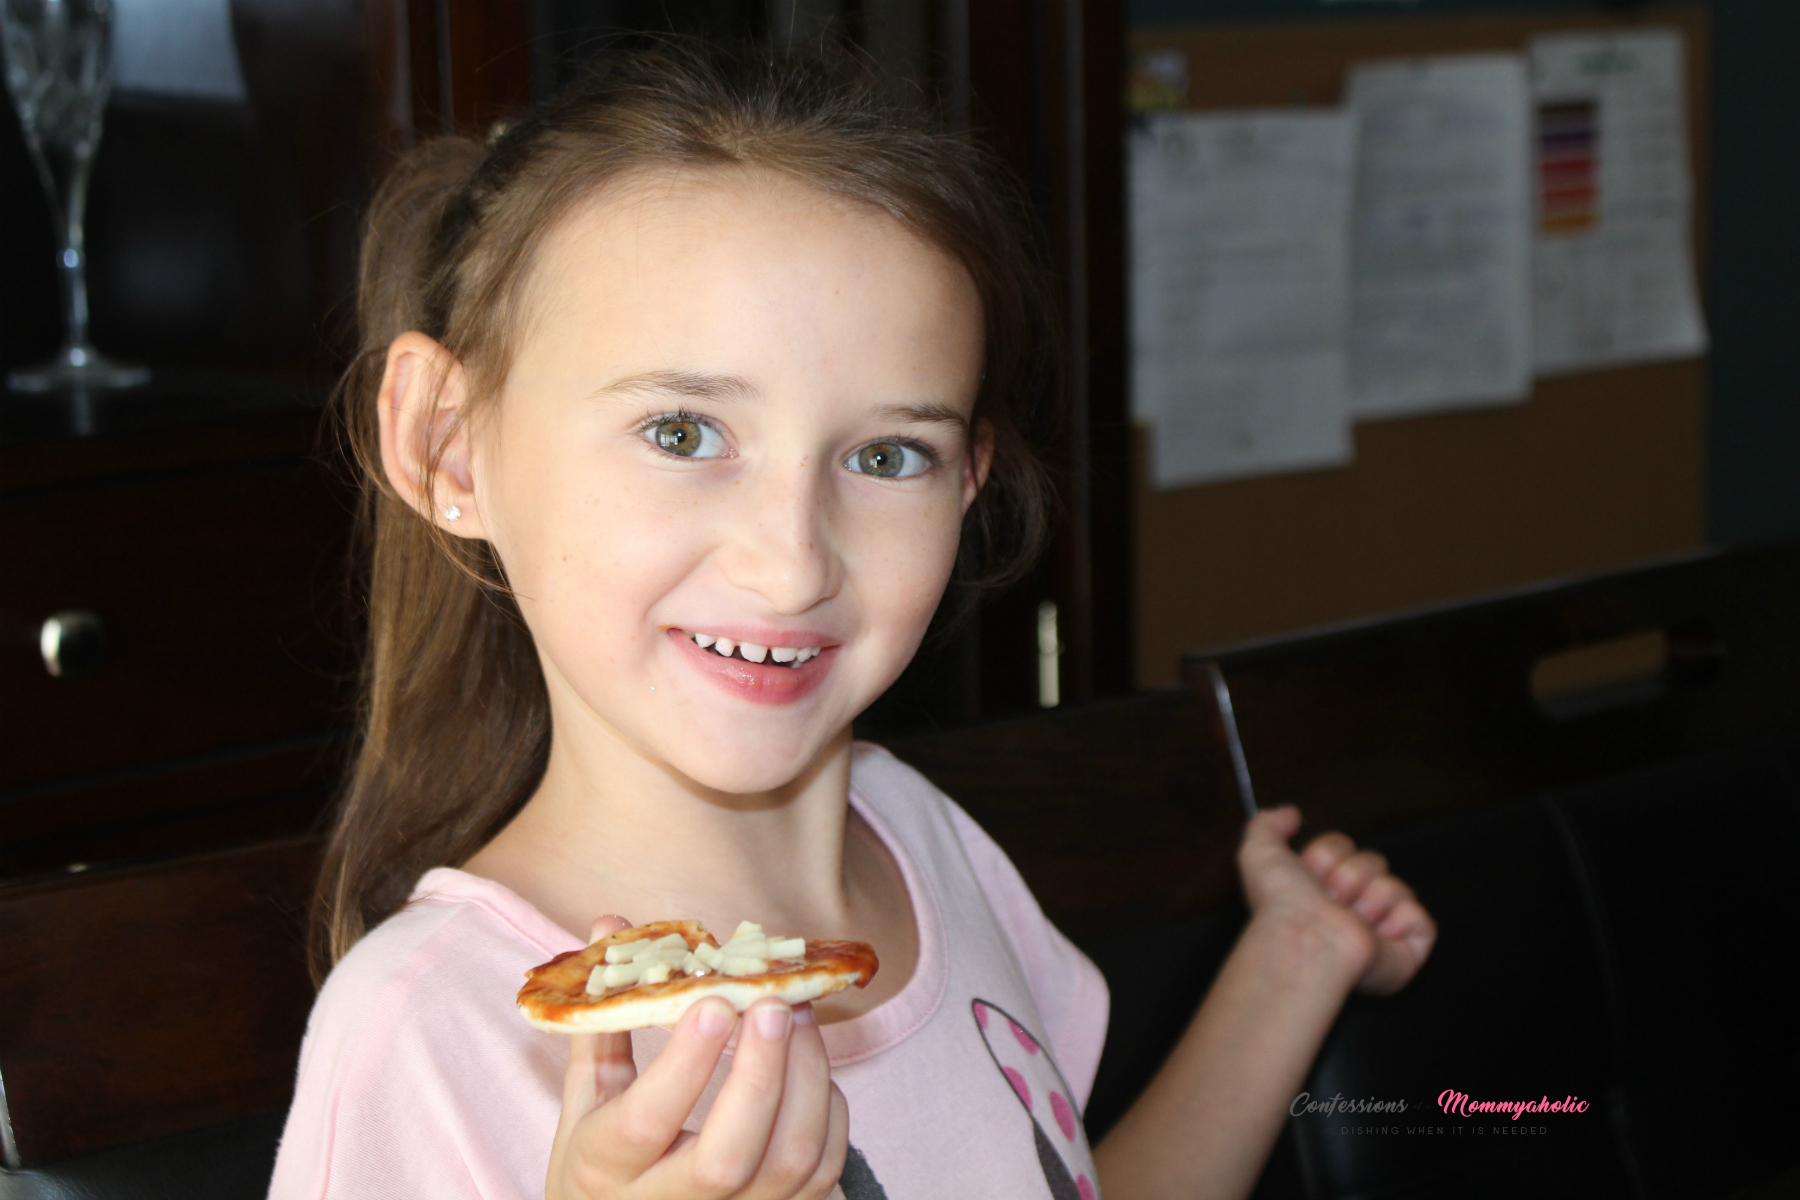 Happily Eating Pizza Lunchables